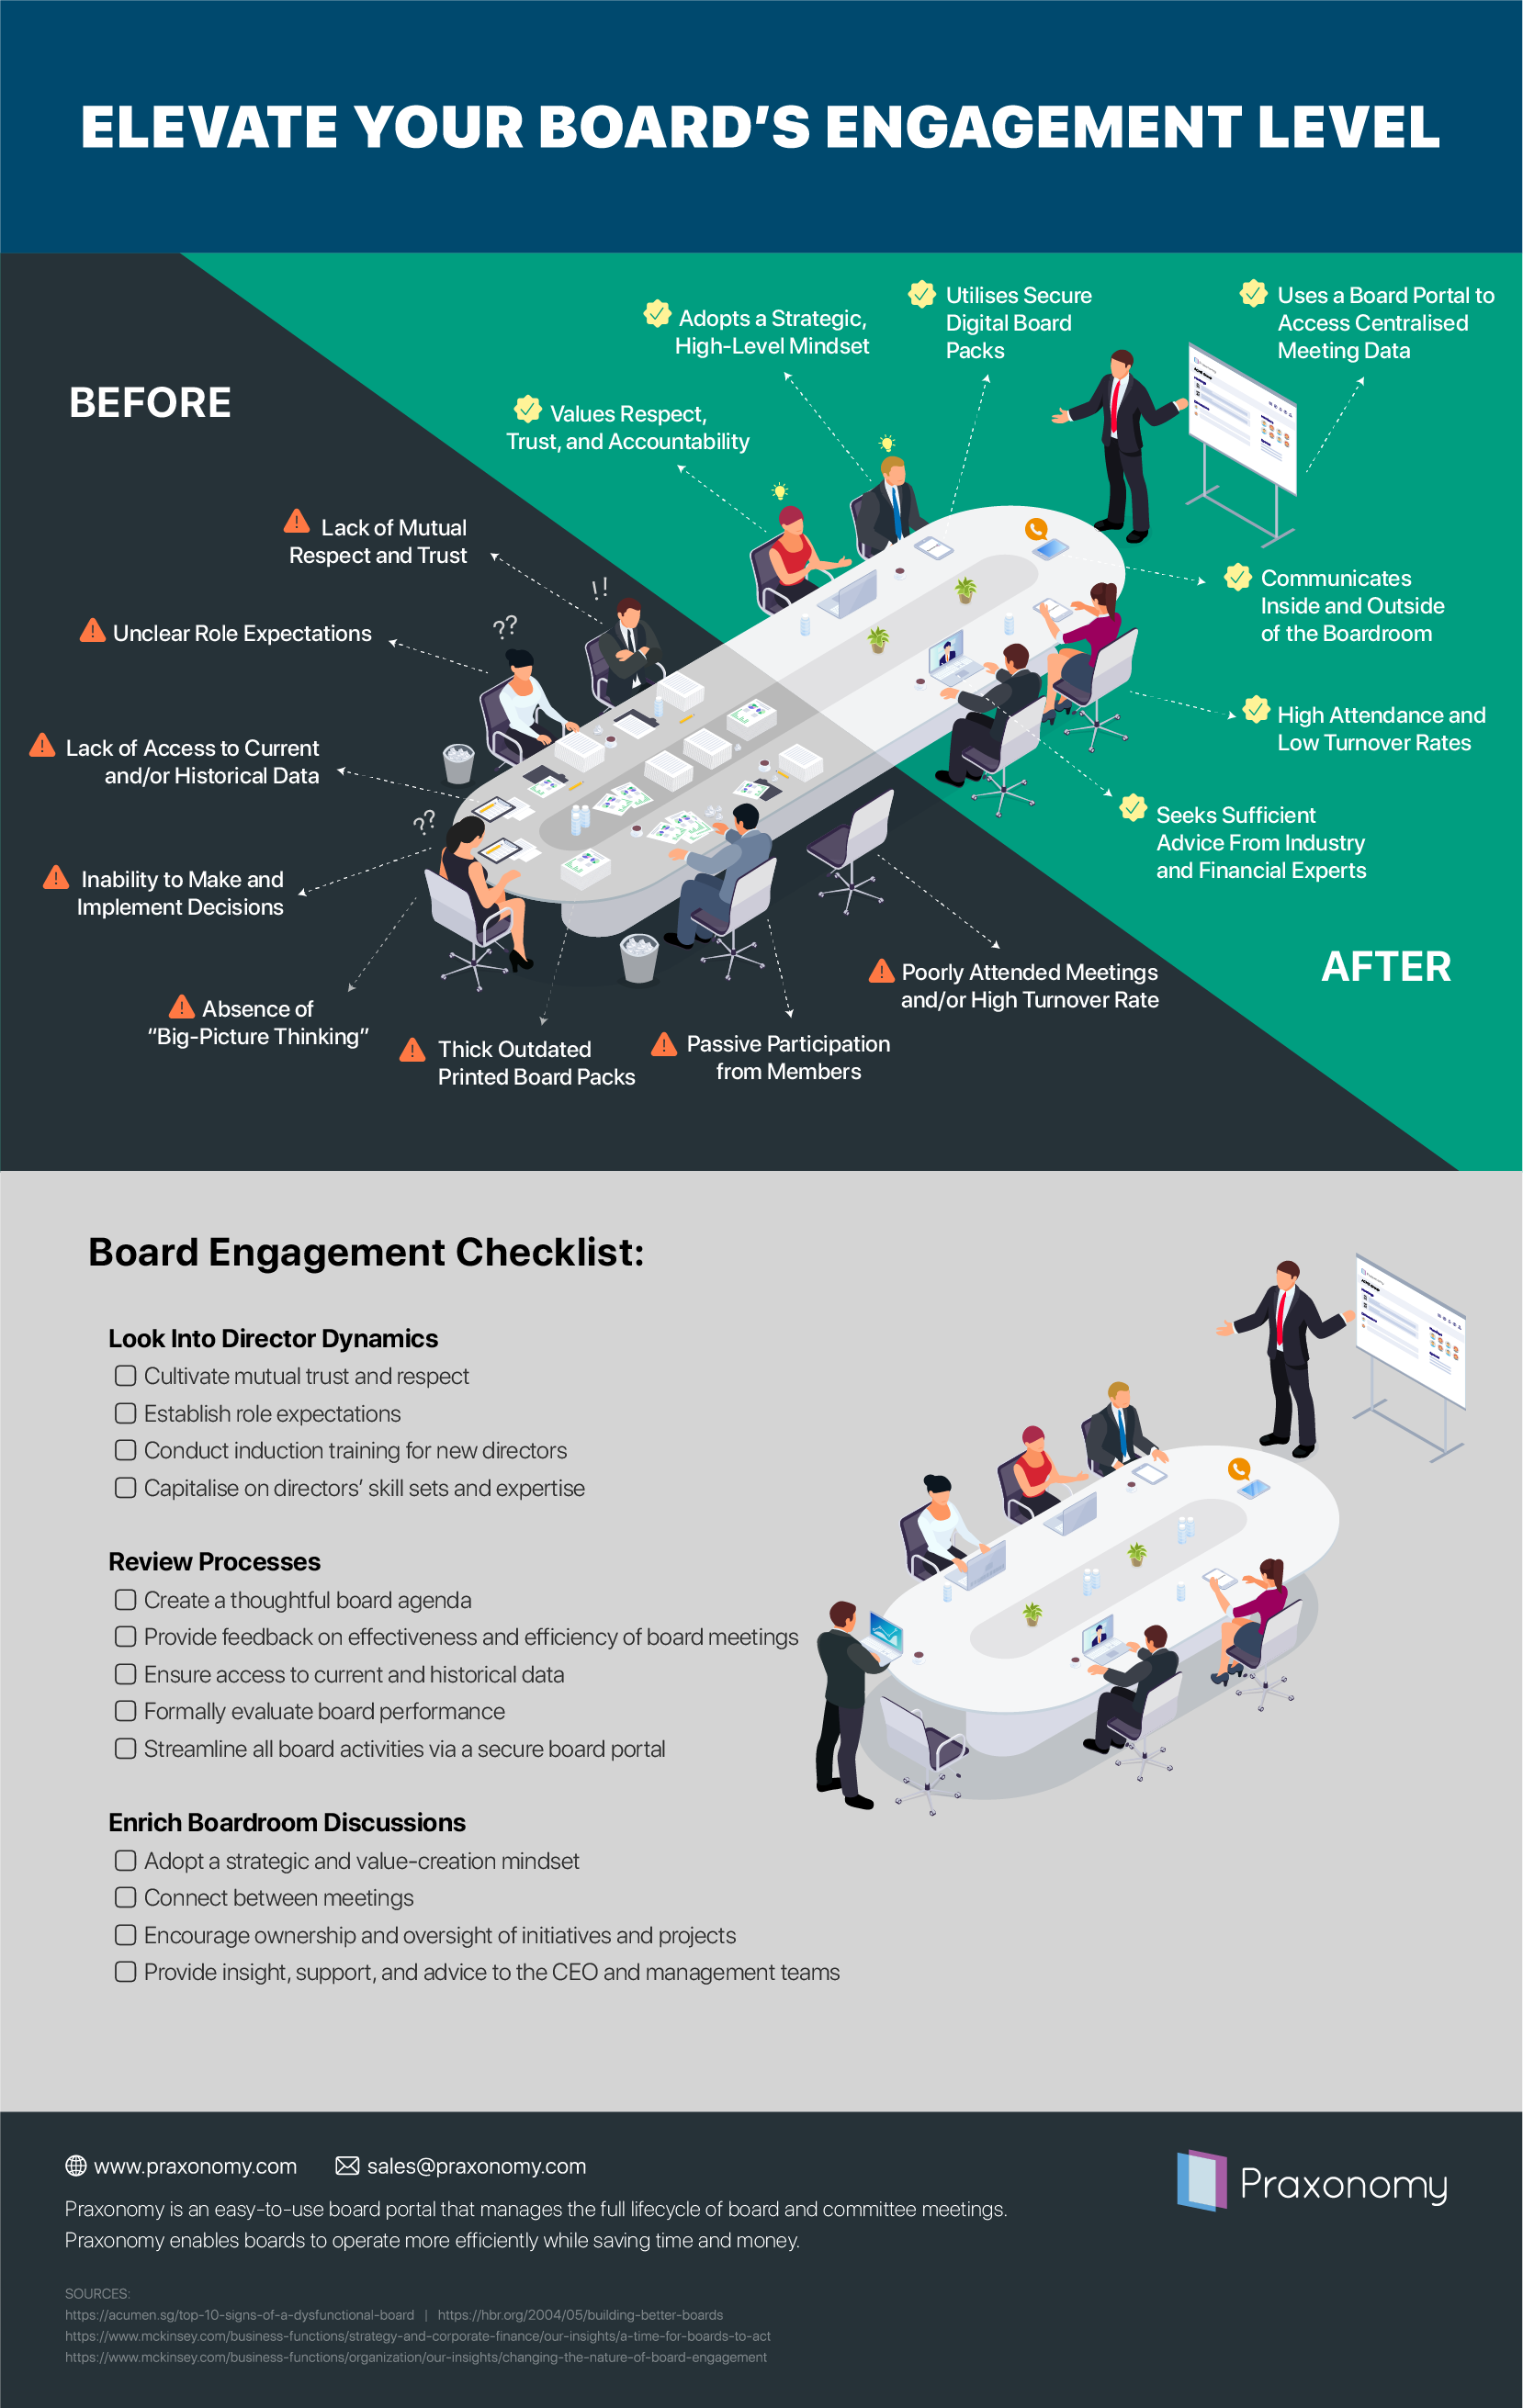 infographic-elevate-your-boards-engagement-level